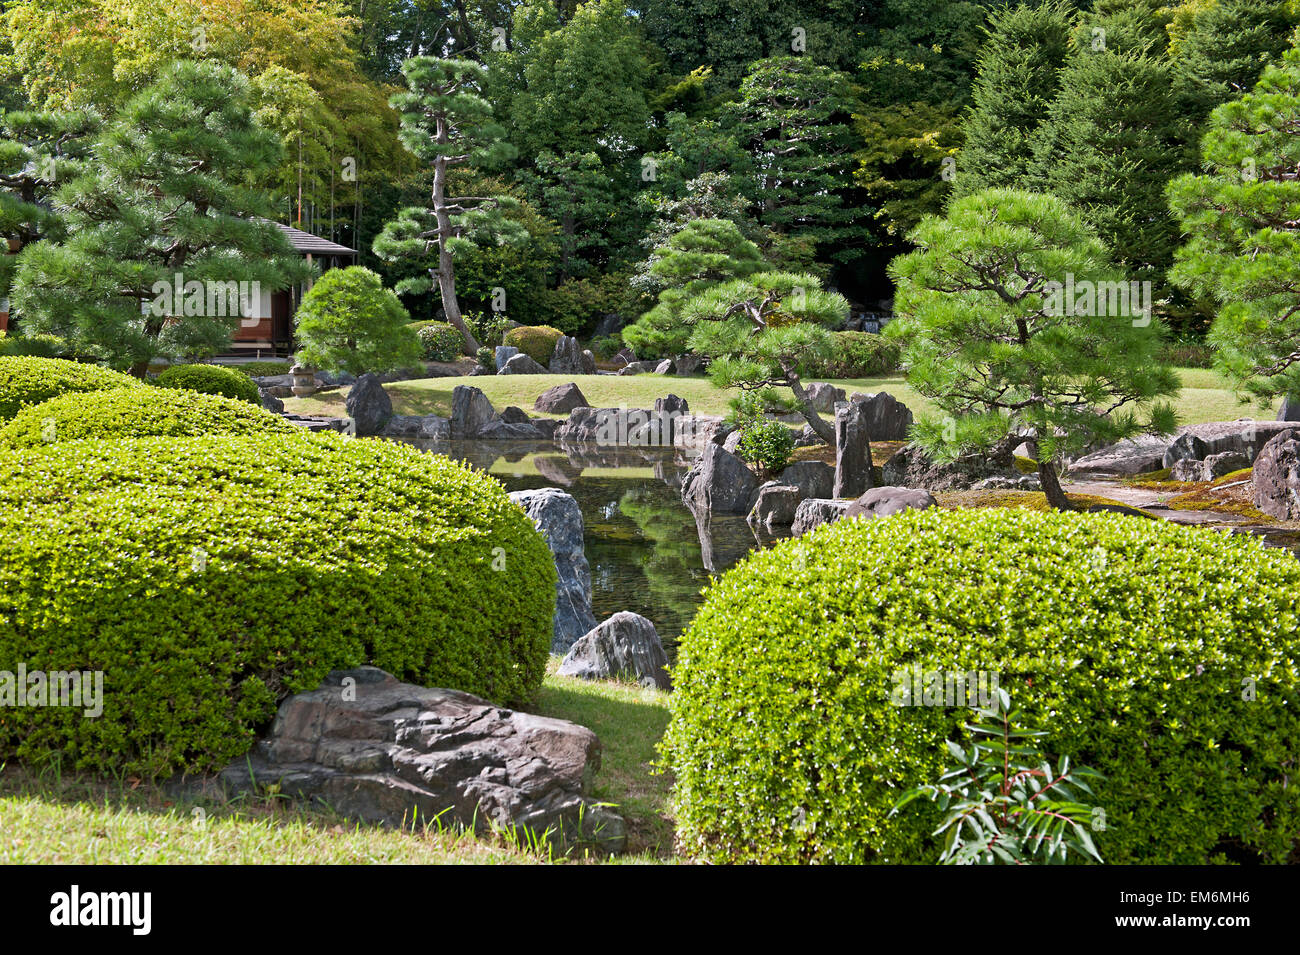 Delightful Japan, Plants And Rocks In A Decorative Garden Area; Tokyo